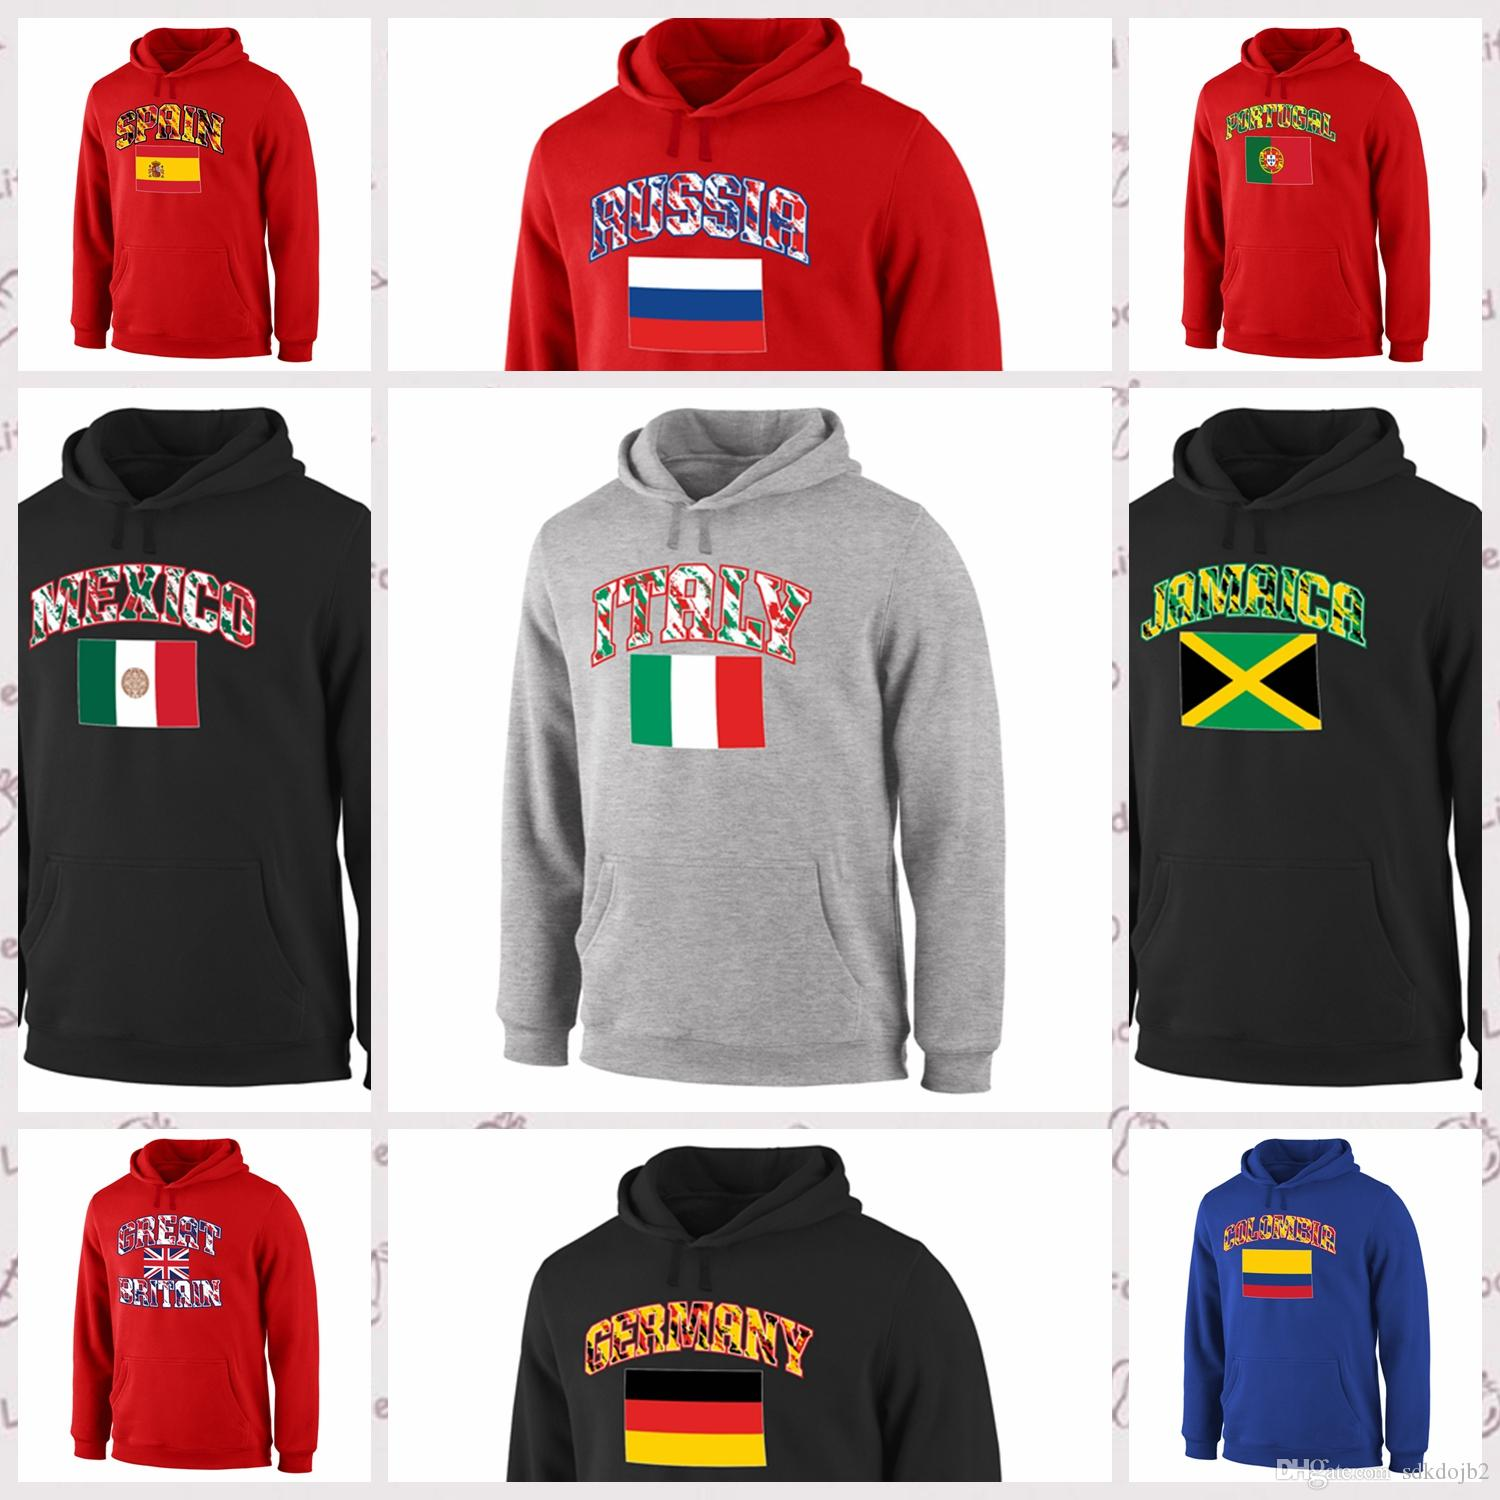 ac42acd23b4be 2019 Spain Fanatics Mexico Soccer Fanatics Portugal Fanatics And More  Branded True Colors Pullover Hoodie Red Black And More From Sdkdojb2